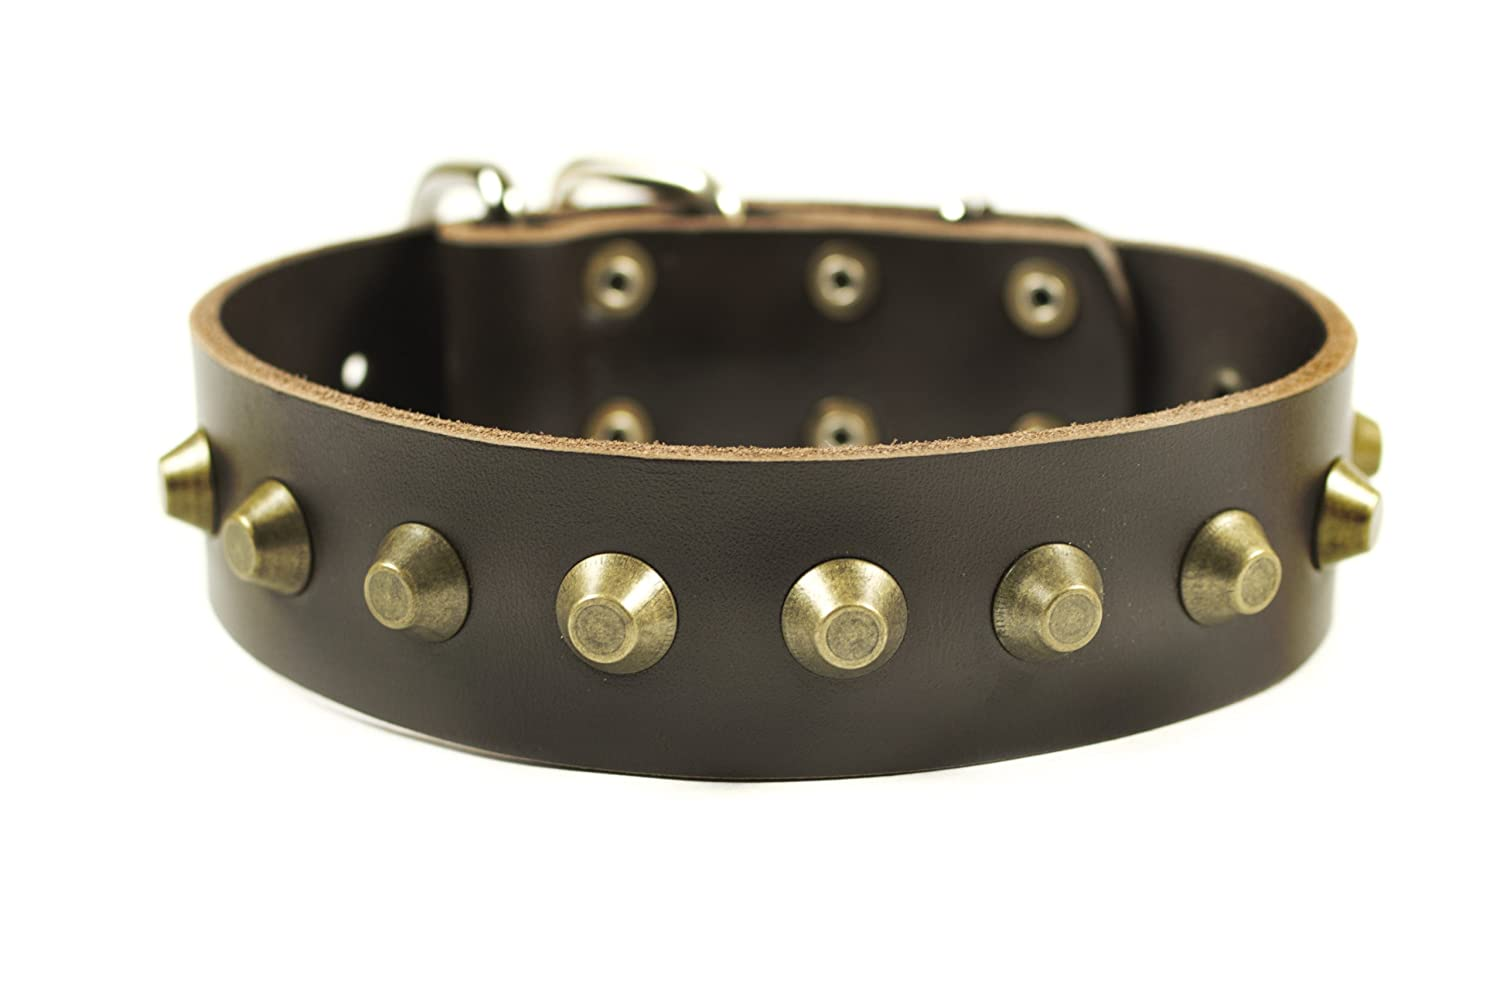 Dean and Tyler SIMPLY STUNNING , Leather Dog Collar with Nickel Hardware Brown Size 18-Inch by 1-1 2-Inch Fits Neck 16-Inch to 20-Inch